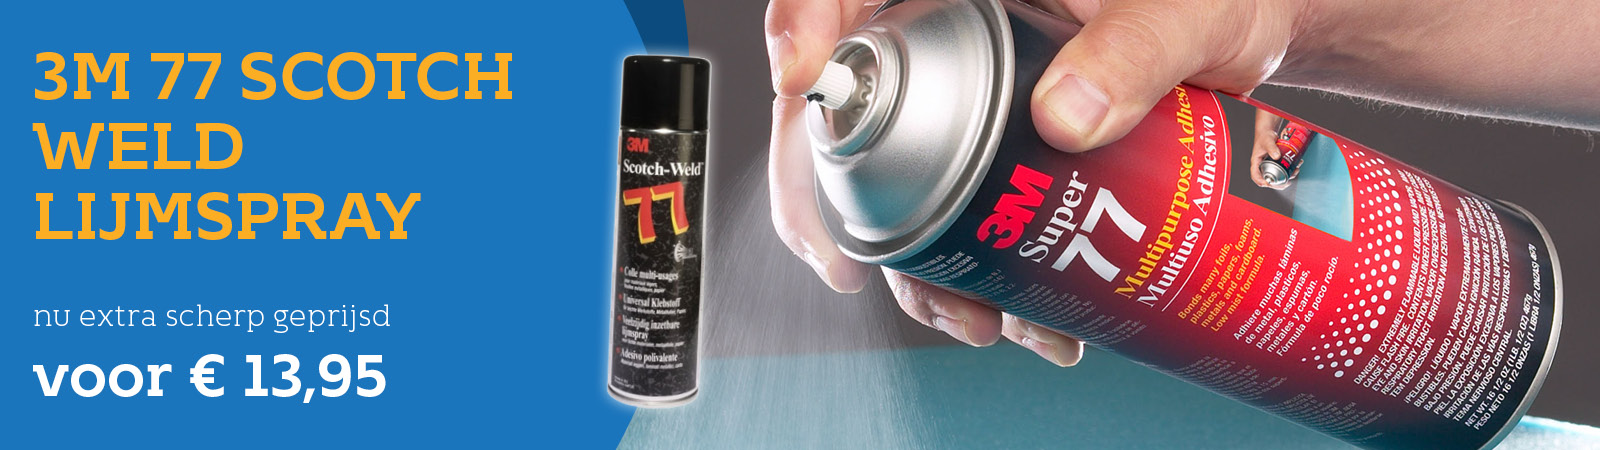 3M 77 Scotch-Weld Lijmspray